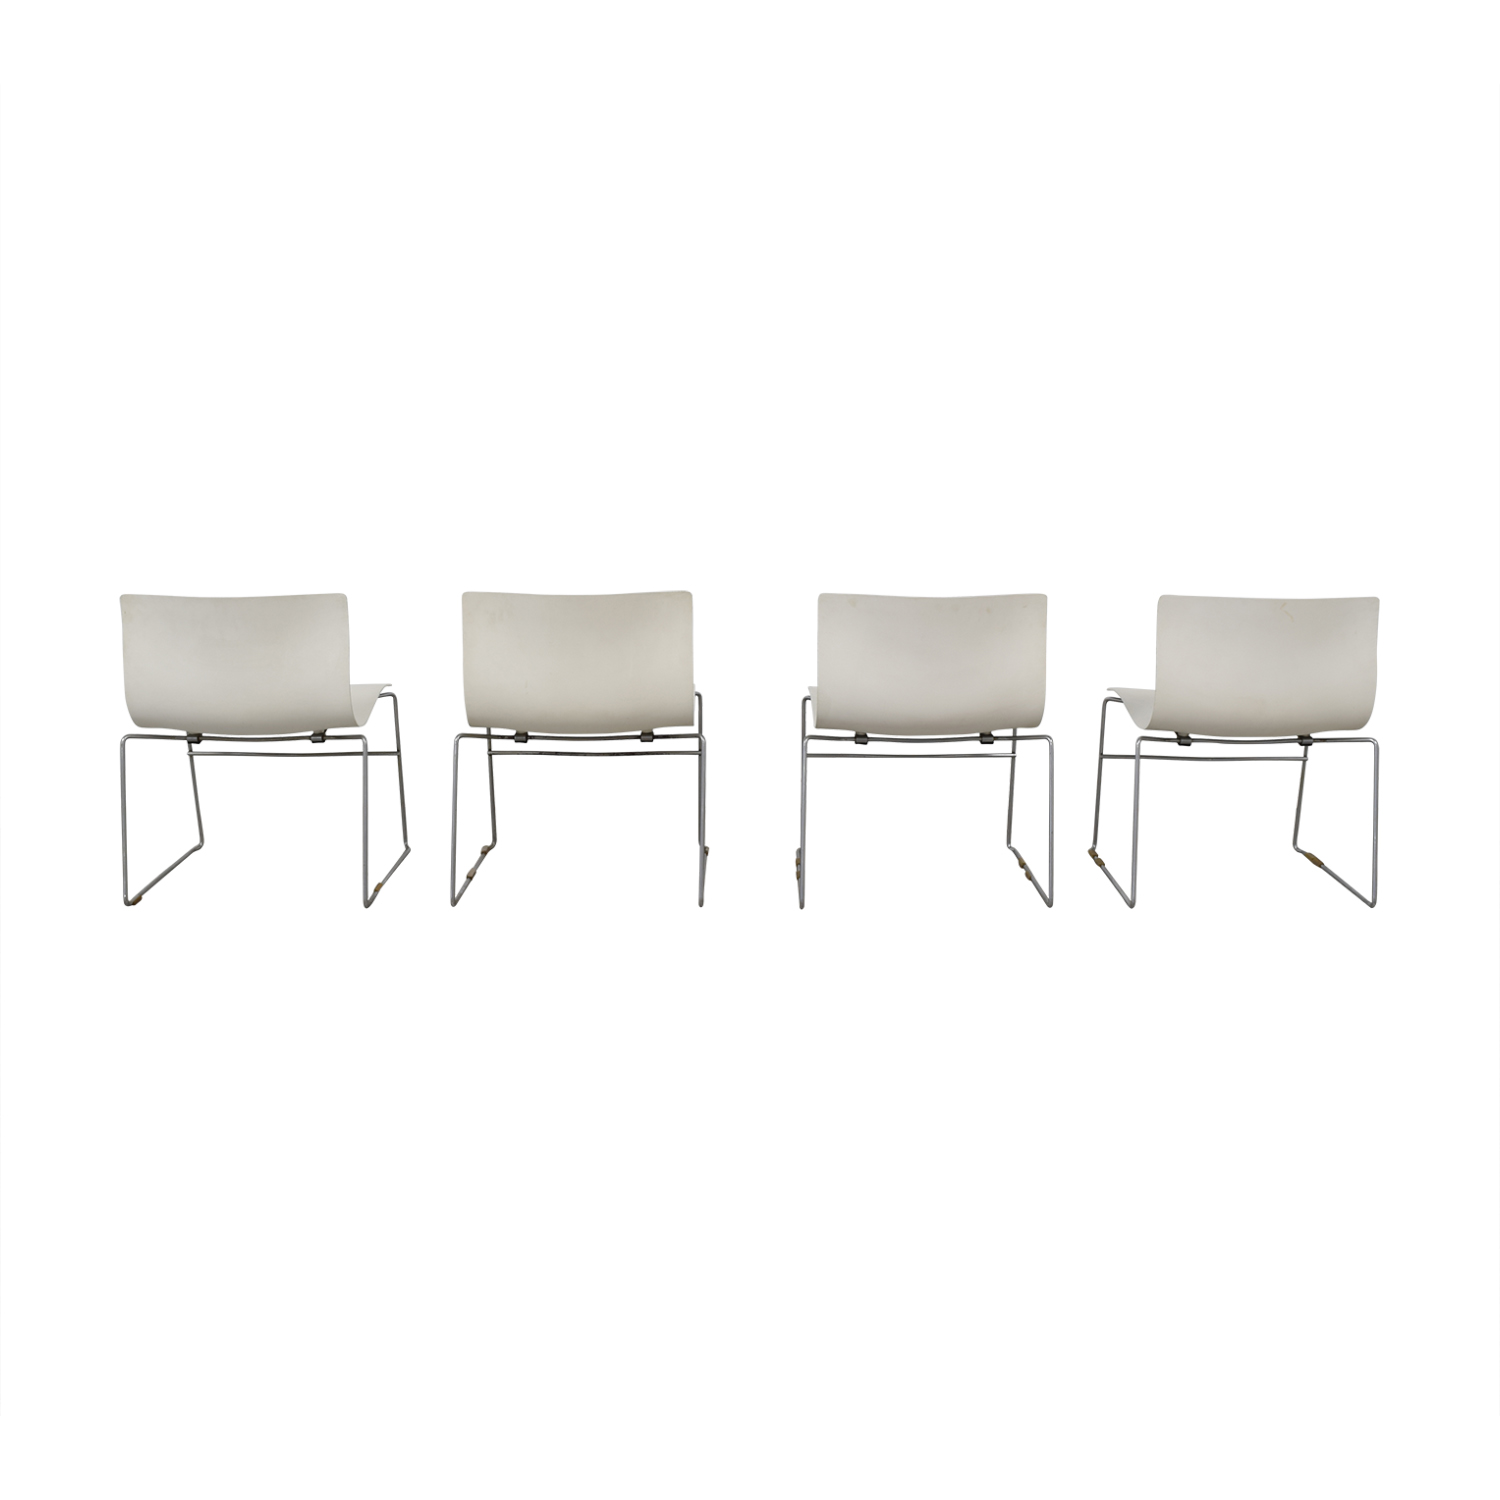 buy Knoll Knoll Vignelli Designs 1983 White Handkerchief Chairs online